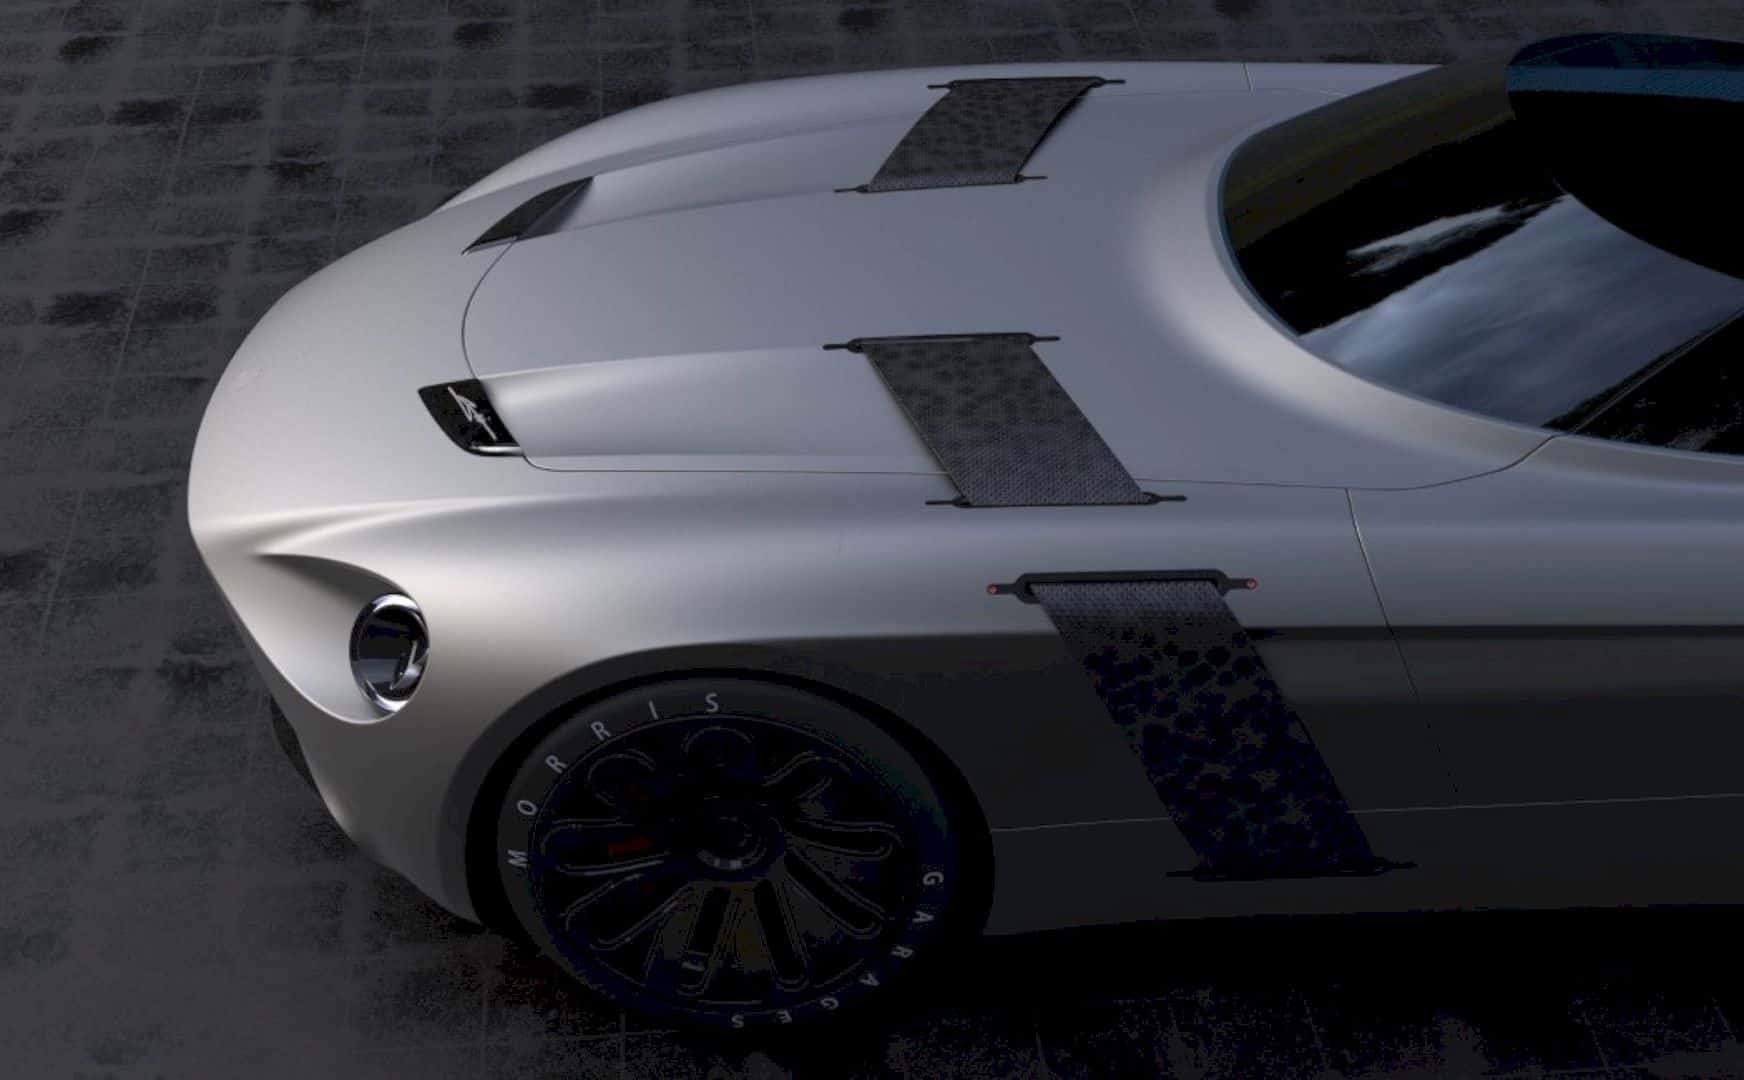 The Roadster MG Concept Design: The Perfect Execution on the Perfect Time